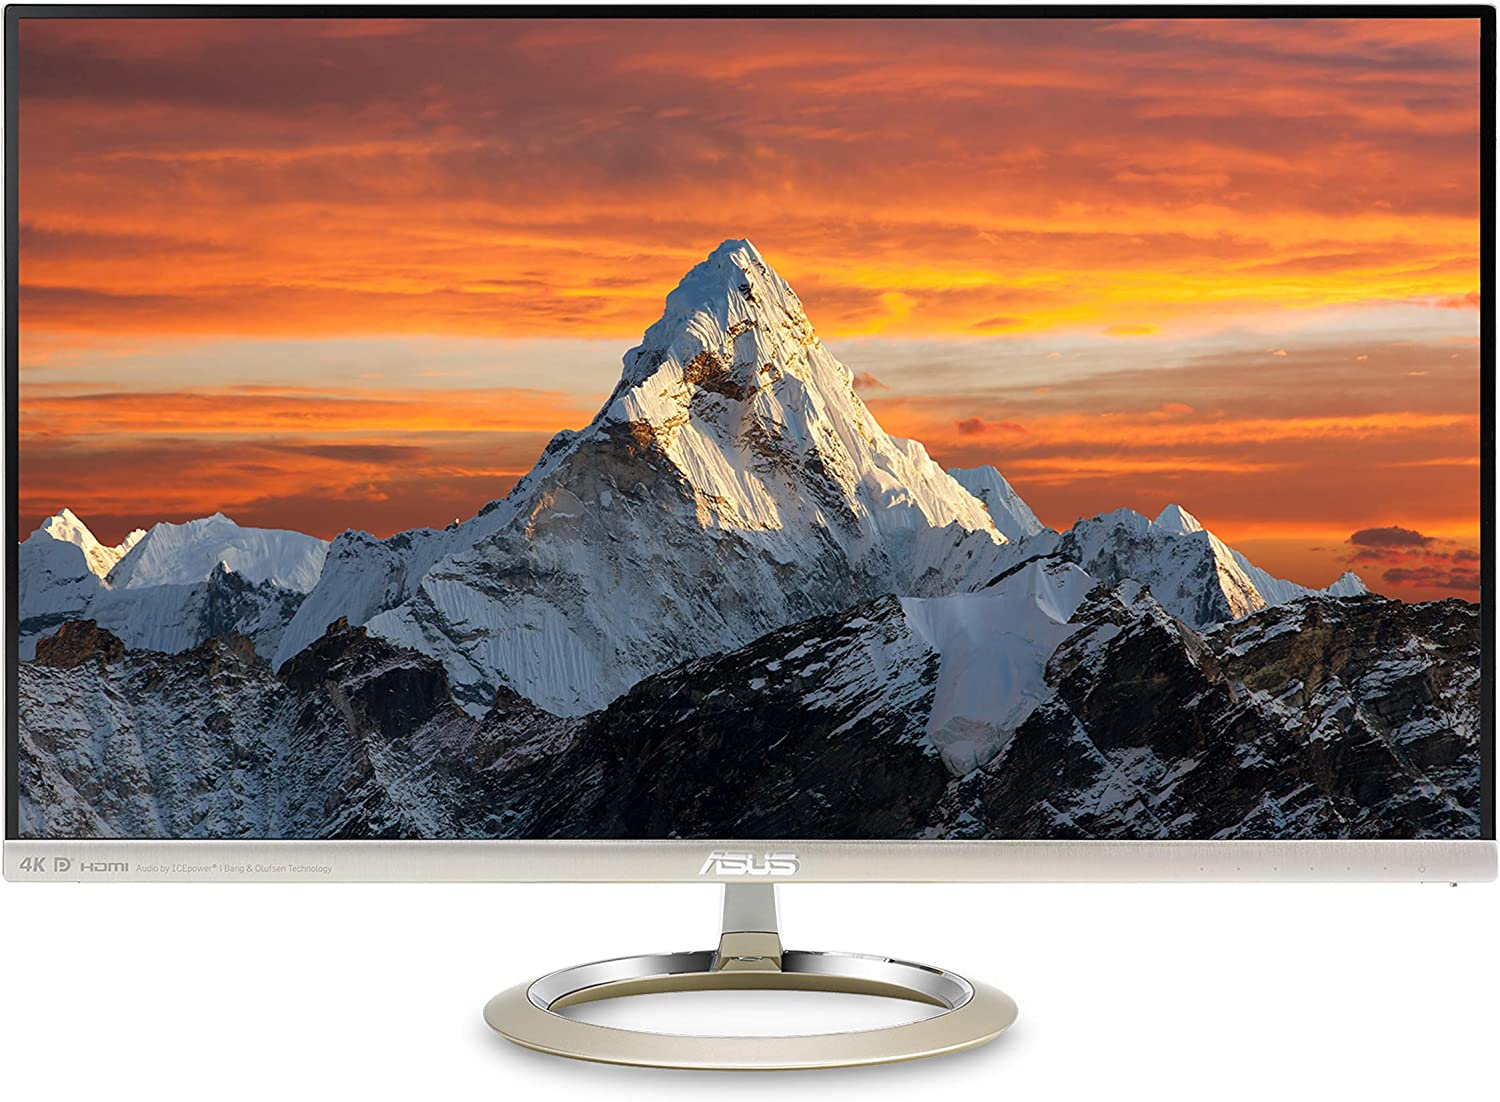 "Asus Designo MX27UCS 27"" Monitor 4K (3840 X 2160) IPS Adaptive Sync Eye Care DisplayPort HDMI USB Type-C Frameless,Icicle Gold + Black"